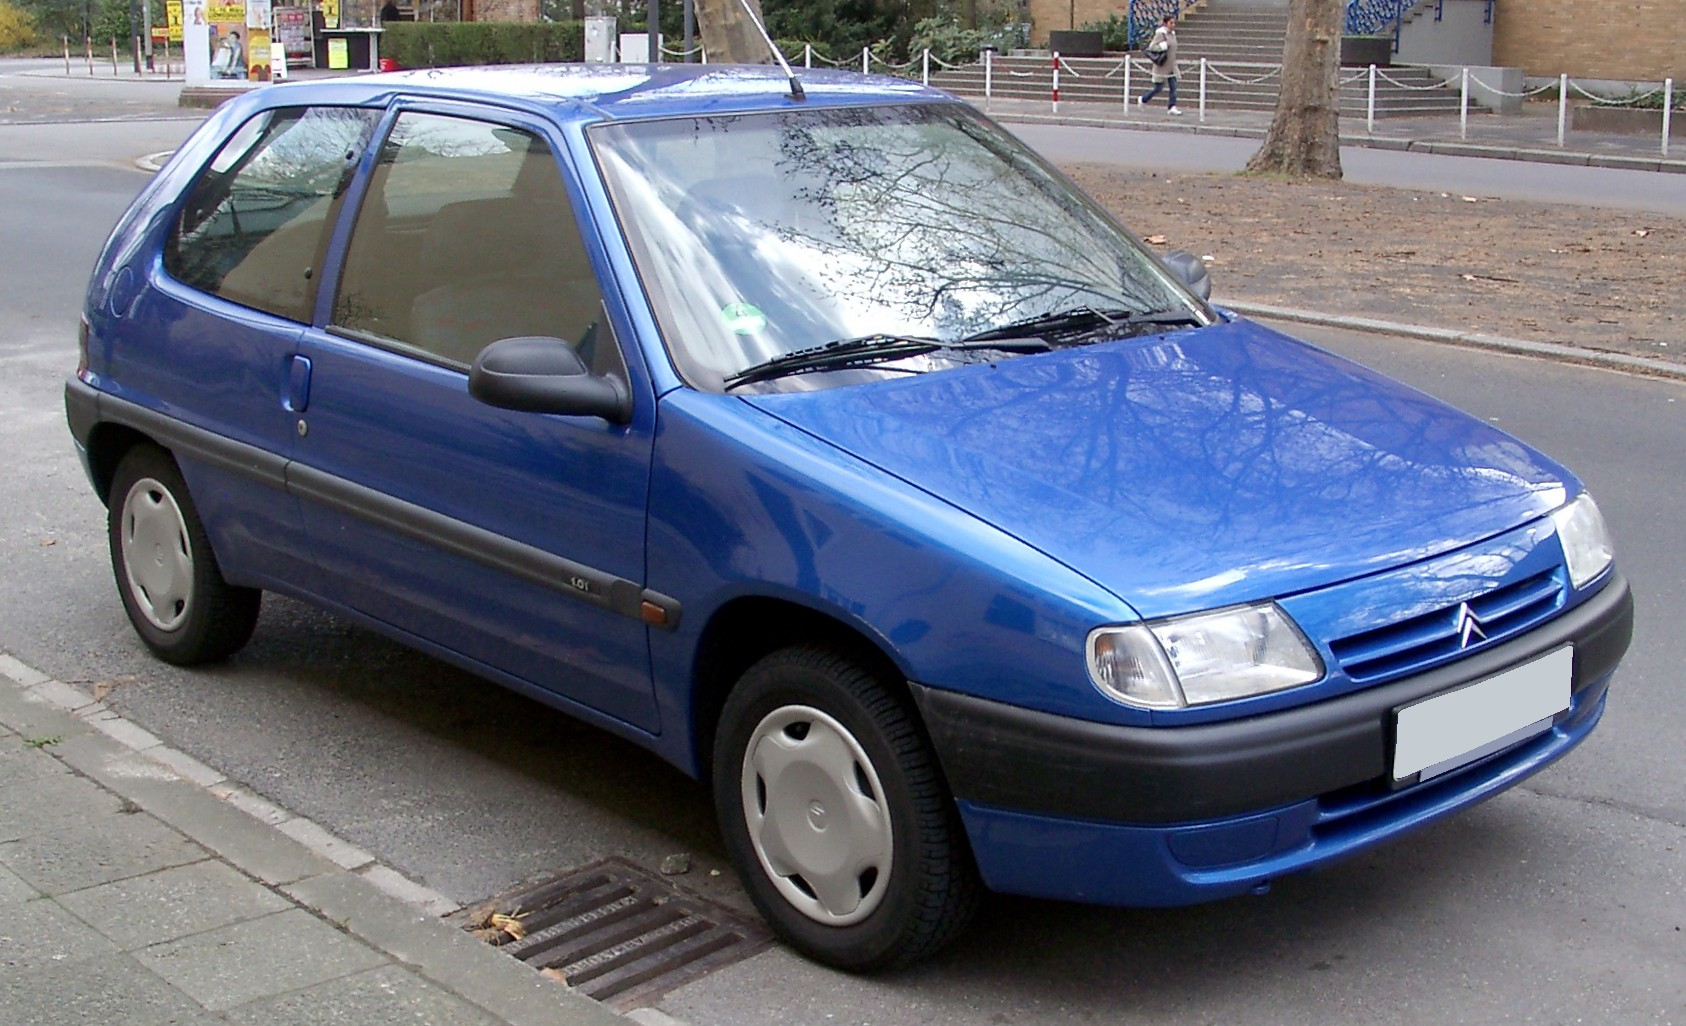 CITROEN SAXO blue